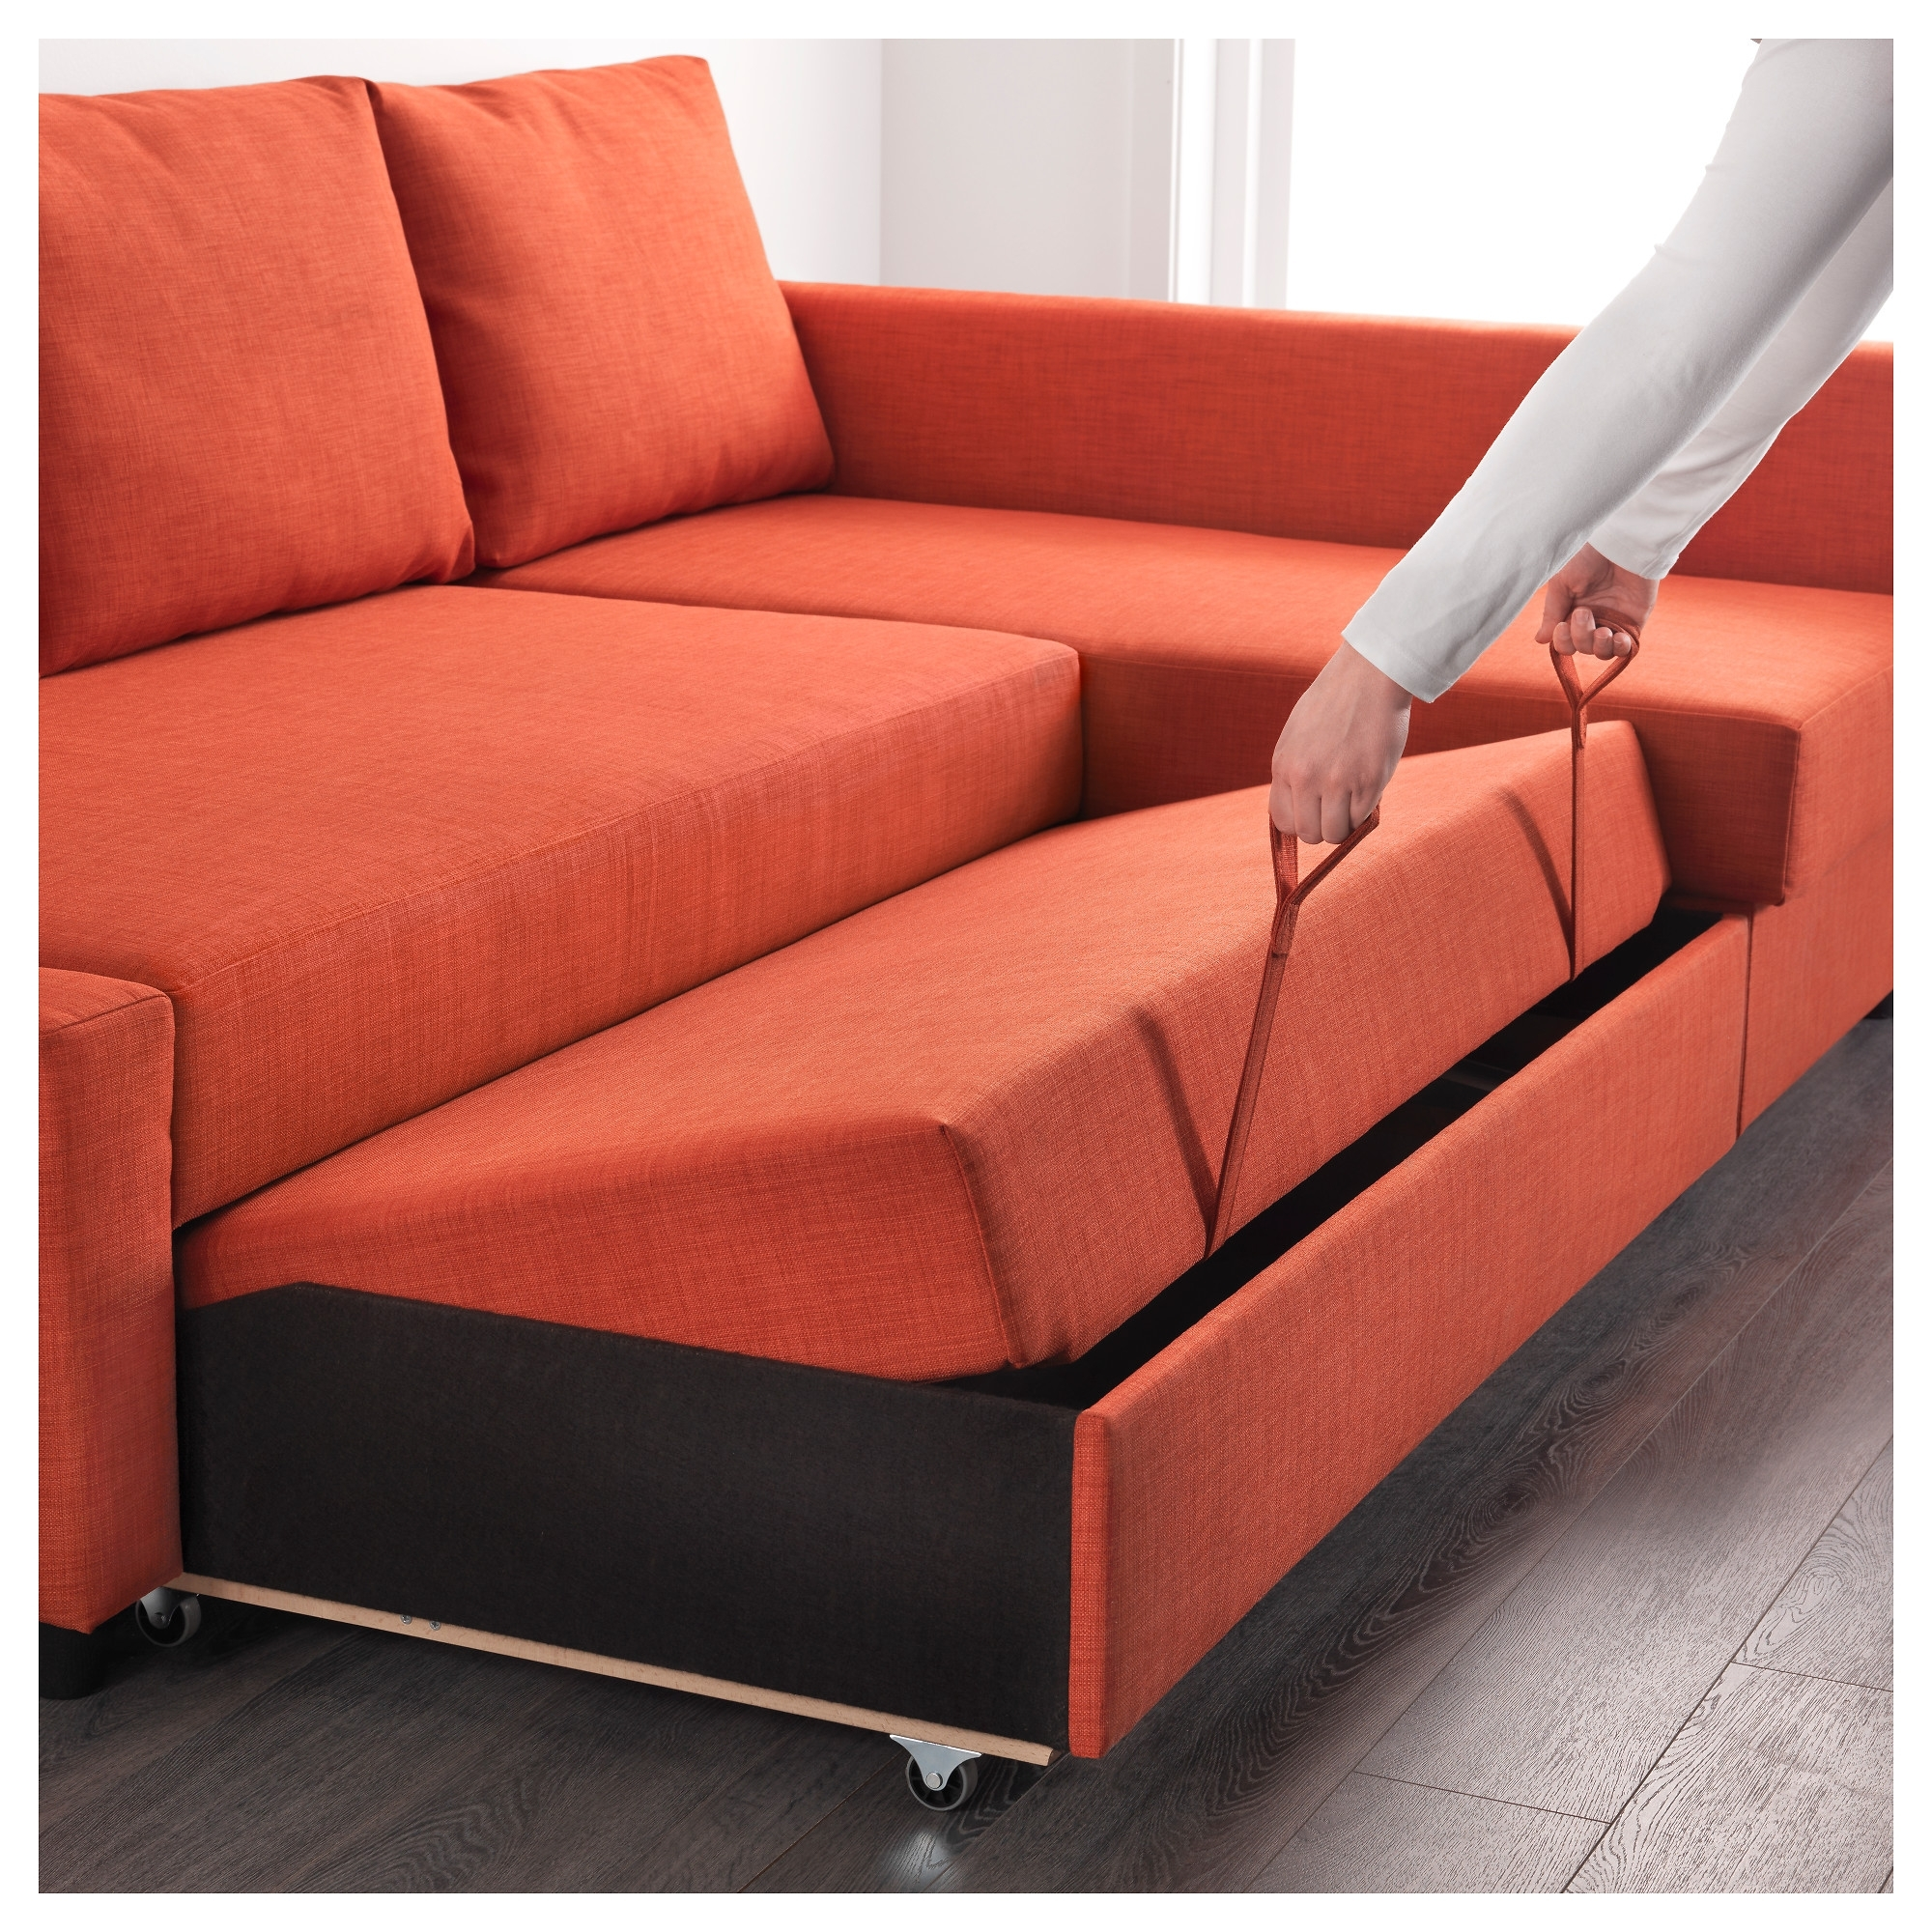 Ikea Corner Sofas With Storage With Regard To Well Liked Friheten Corner Sofa Bed With Storage Skiftebo Dark Orange – Ikea (Gallery 8 of 20)